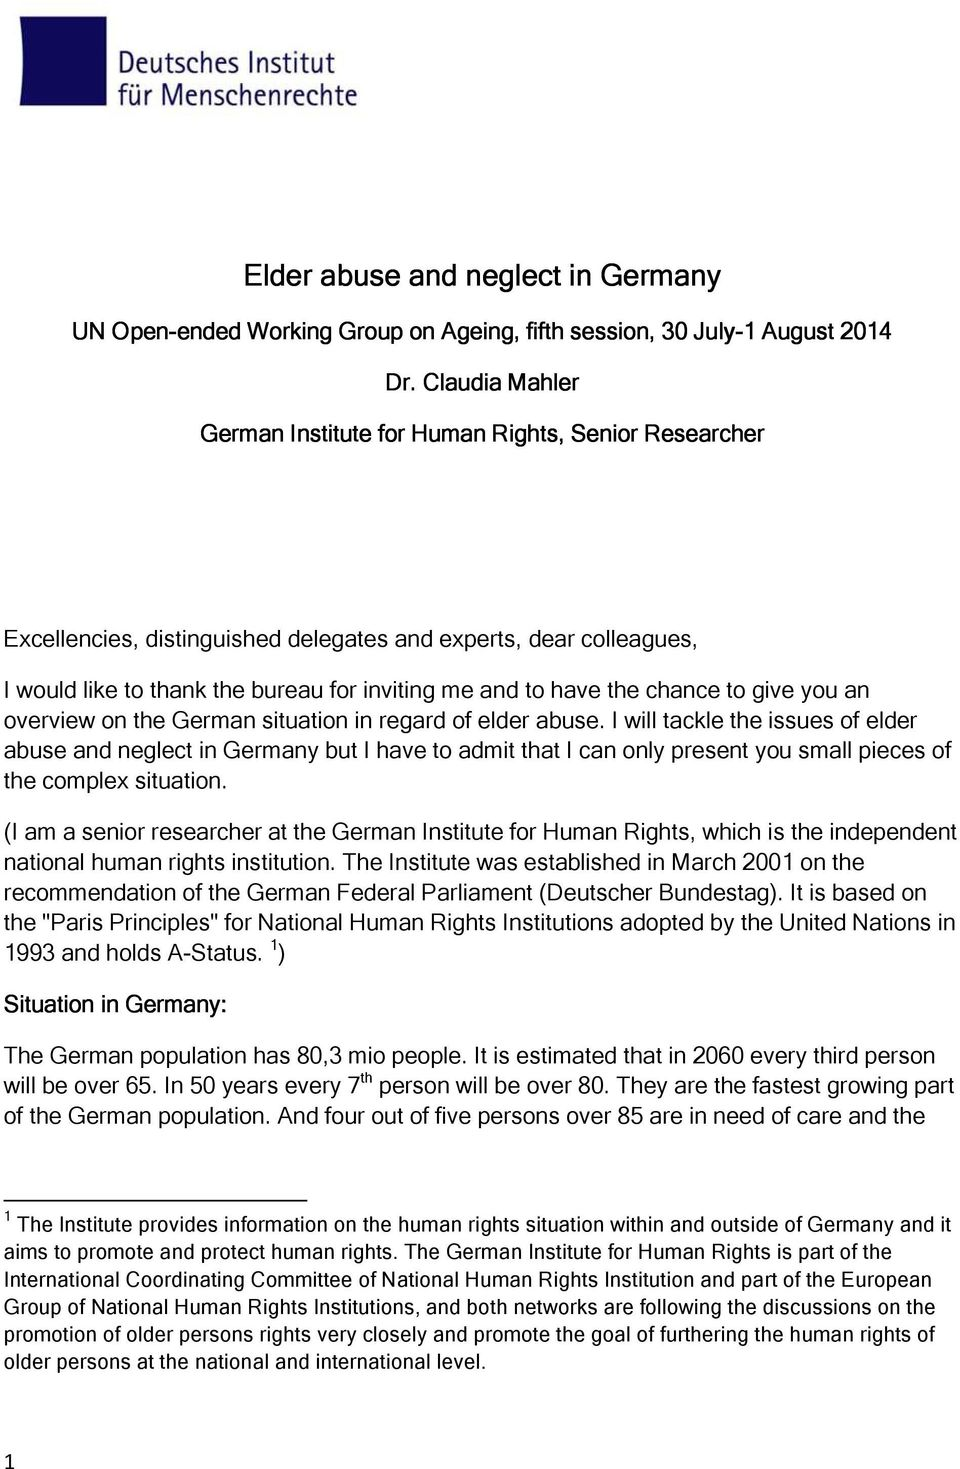 the chance to give you an overview on the German situation in regard of elder abuse.